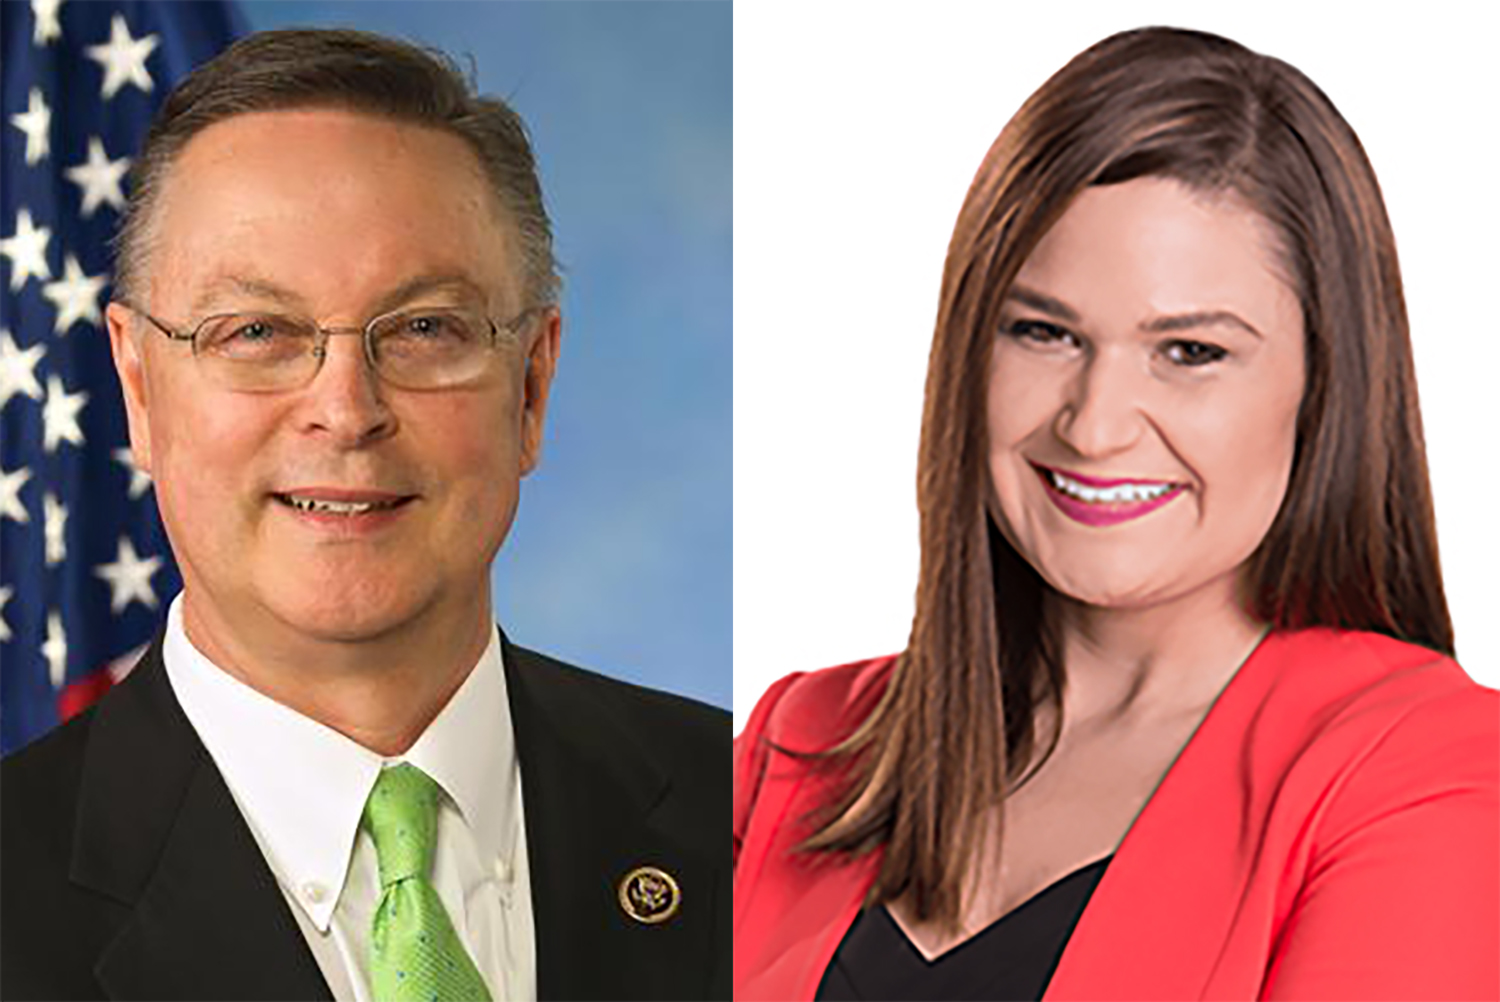 U.S. Rep. Rod Blum, R-Iowa, (left) will face off against Democratic challenger Abby Finkenauer (right) to represent Iowa's 1st congressional district.